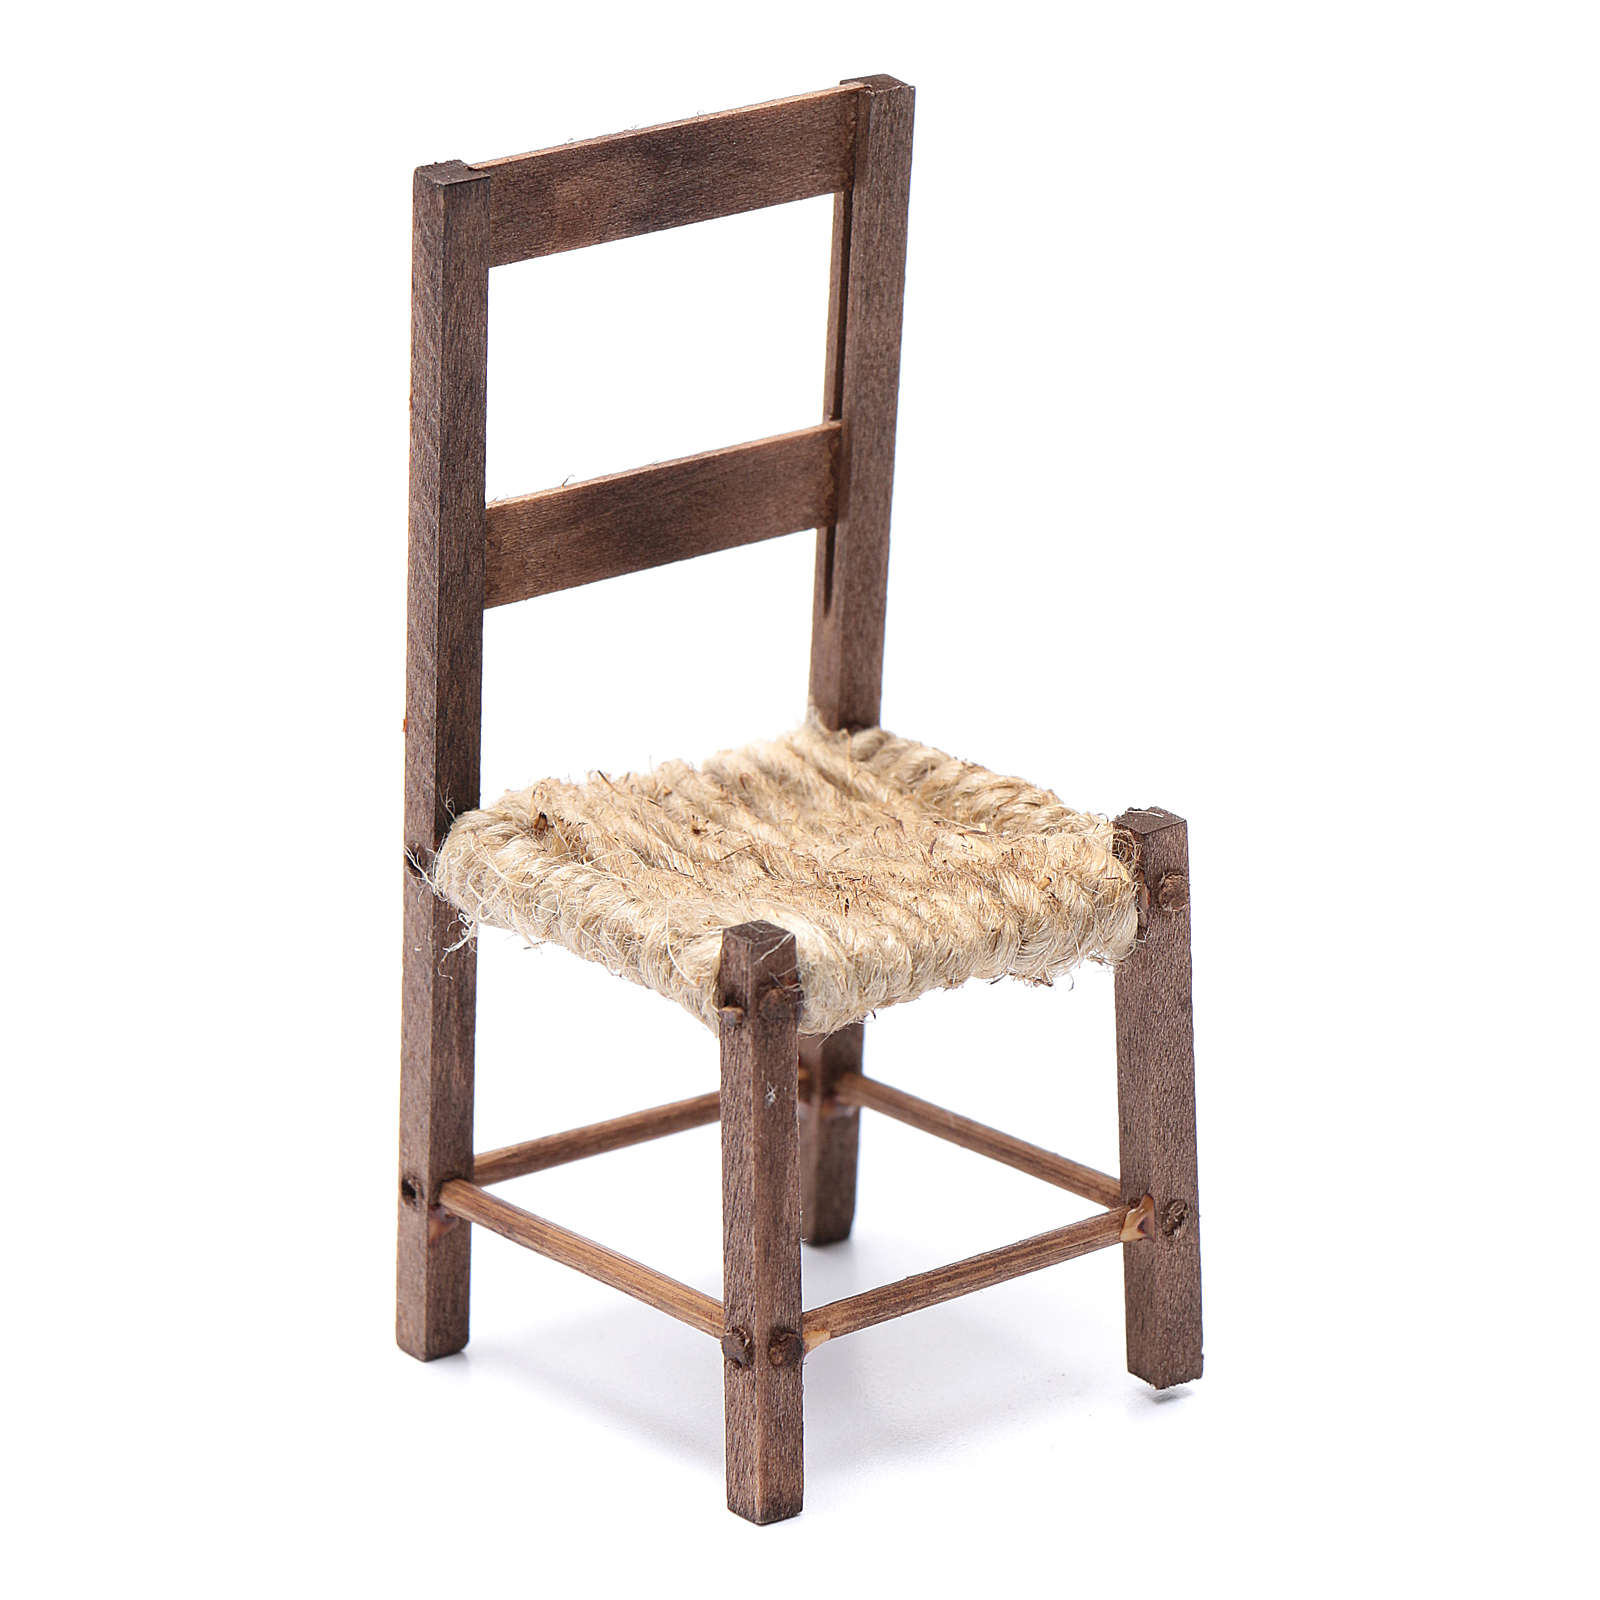 DIY nativity scene chair 10 cm for Neapolitan nativity scene 4